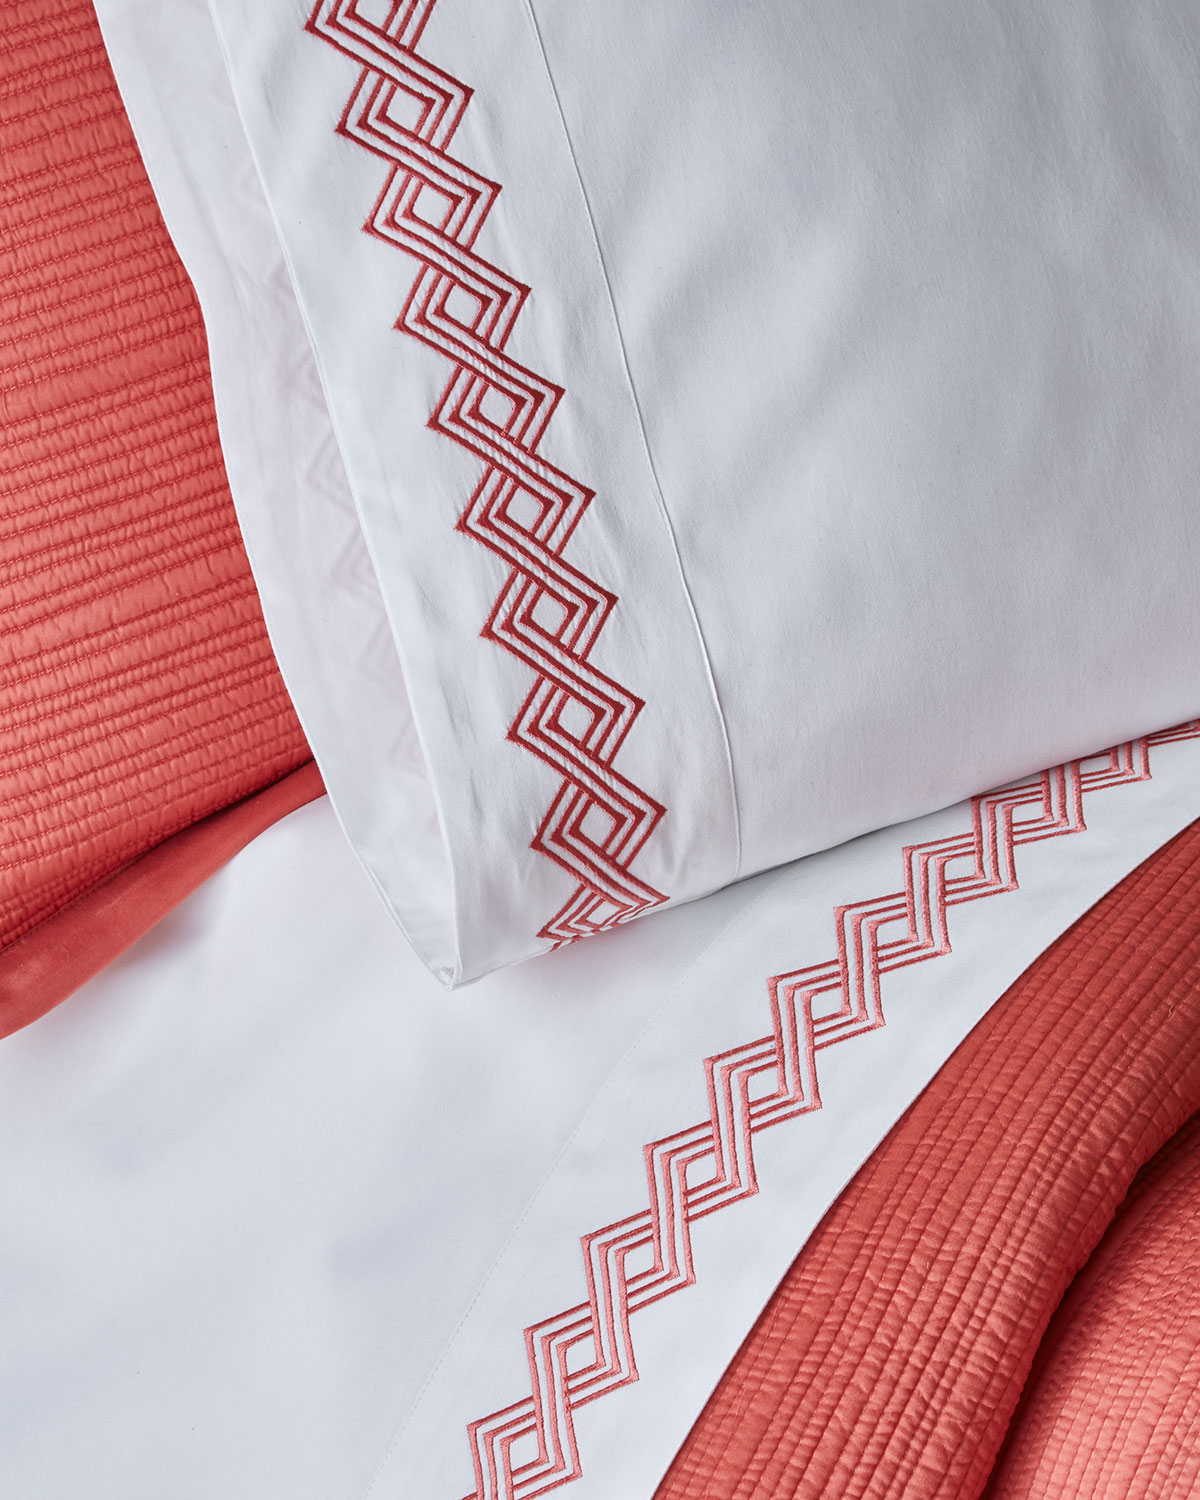 Amity Home Amalfi Standard Embroidered Pillowcases, Pair